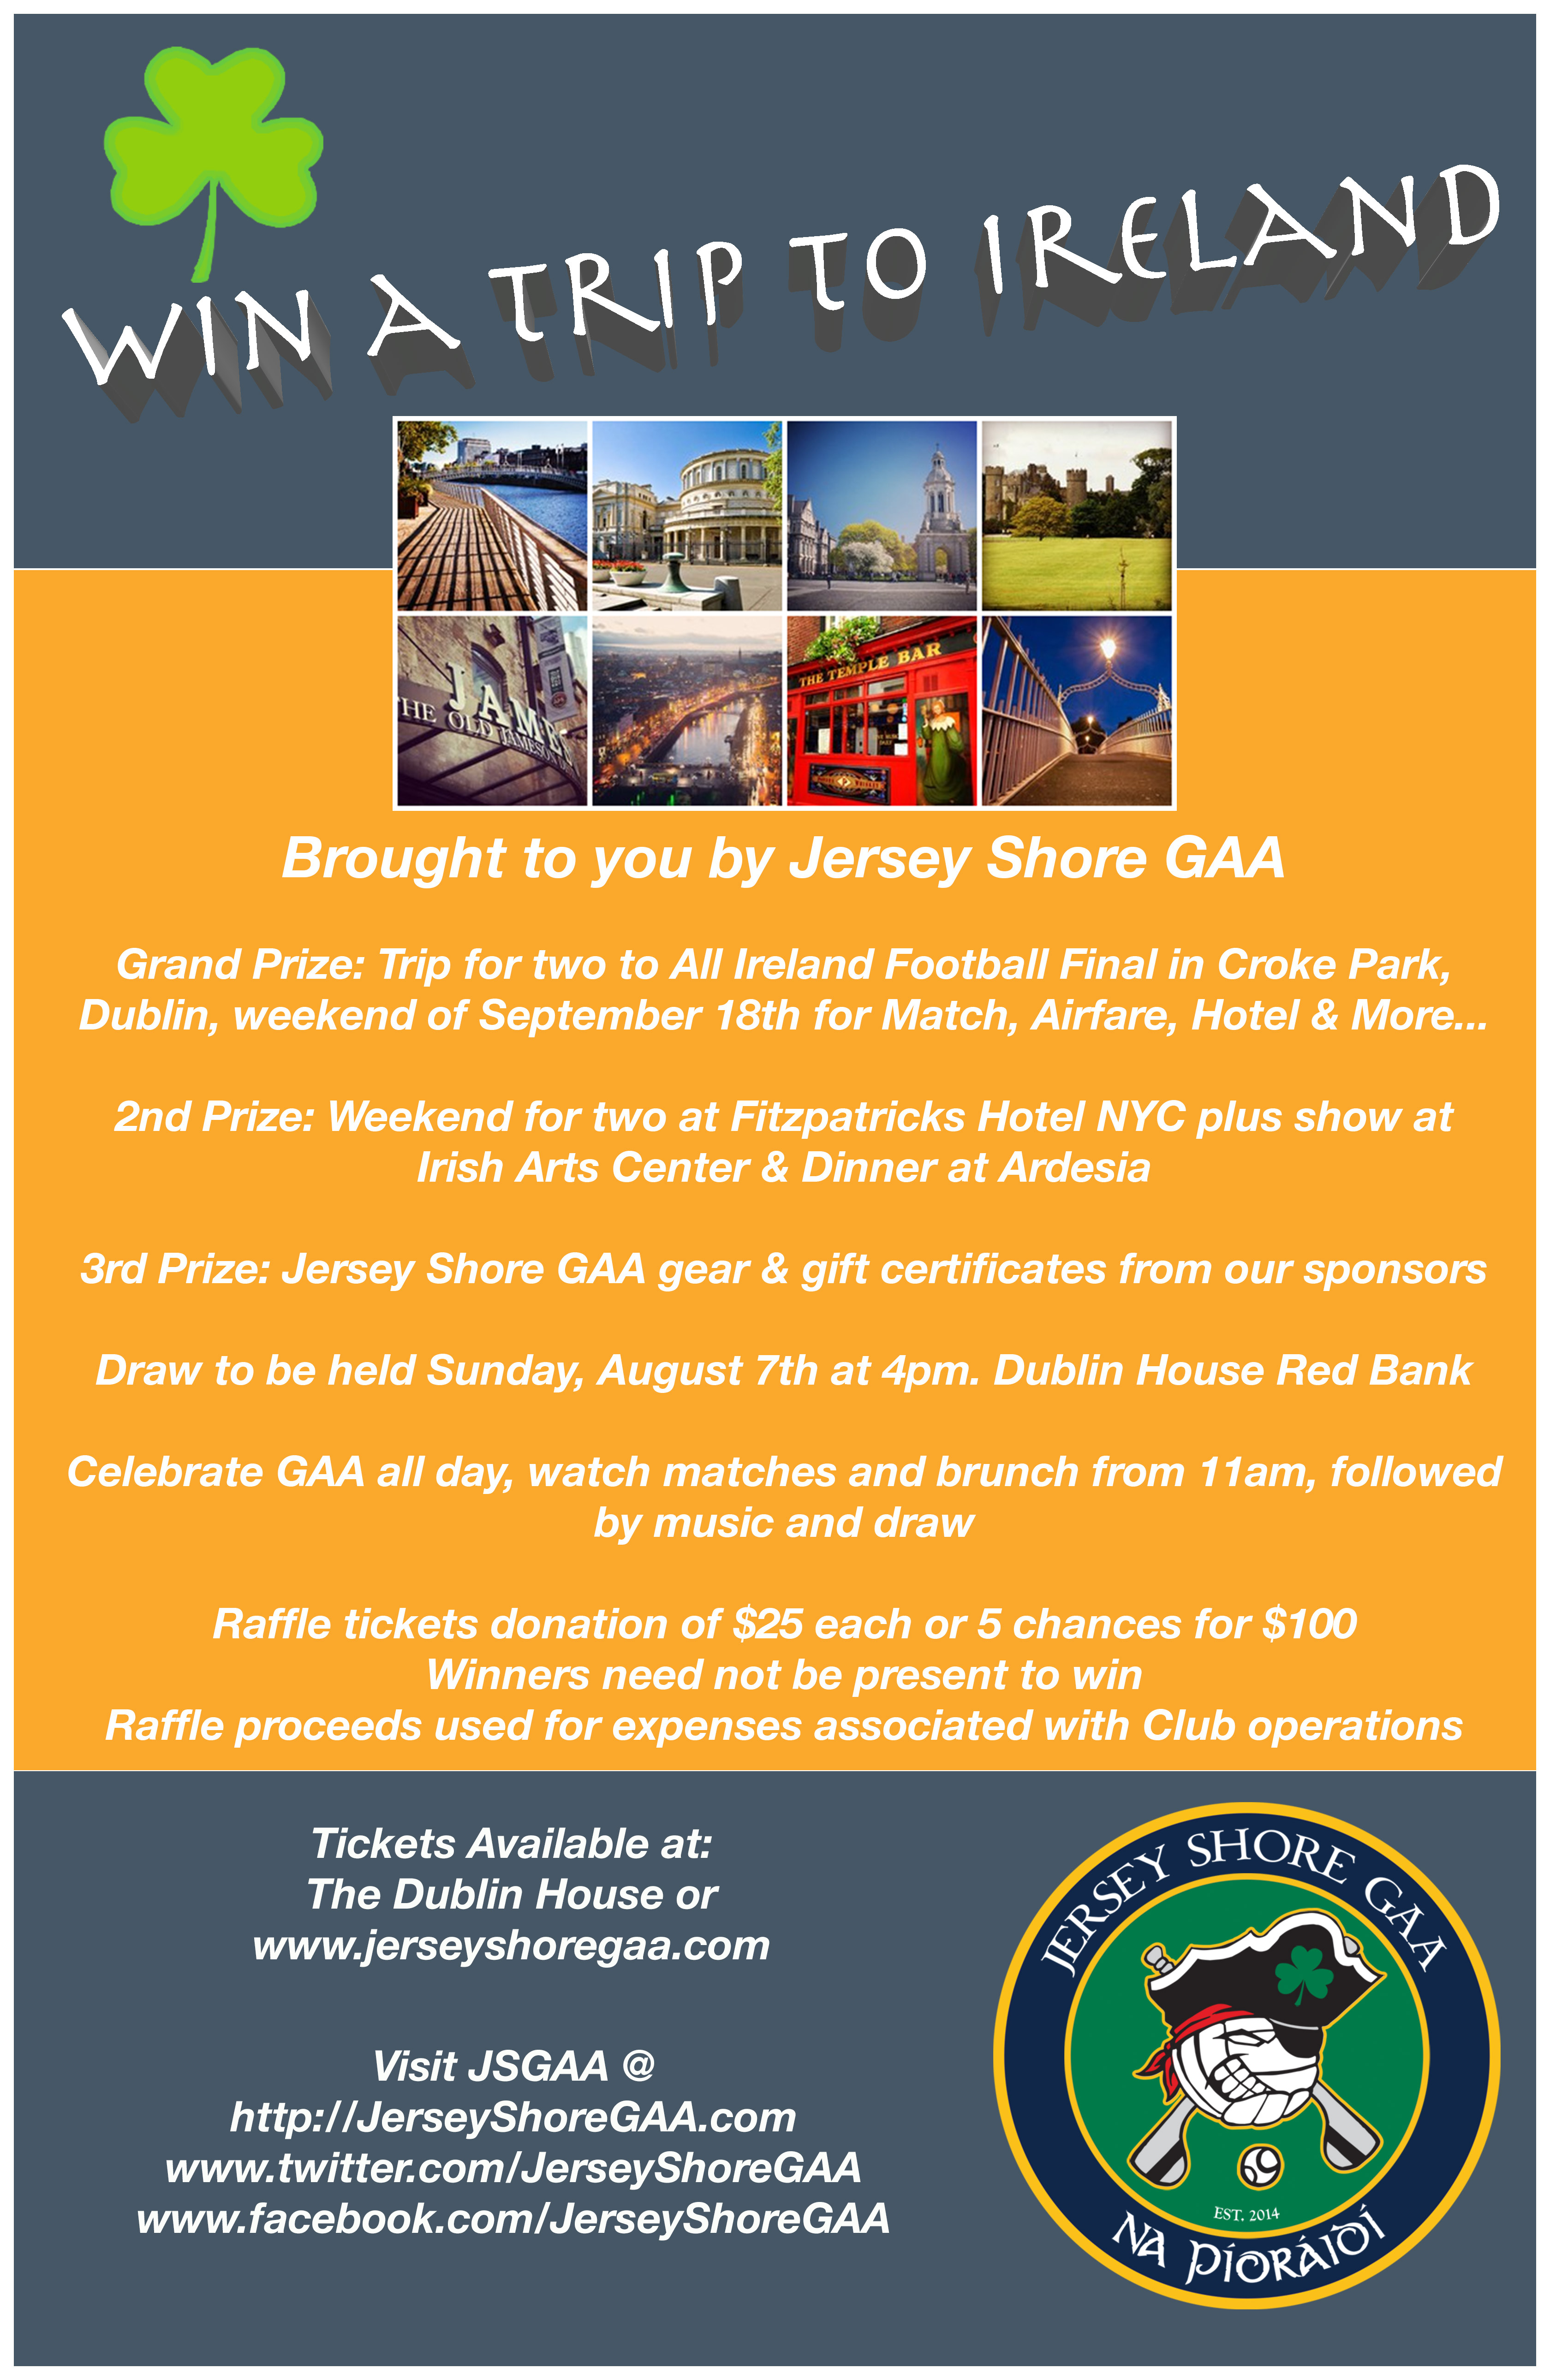 Jersey Shore GAA 2016 Raffle, draw date August 7th